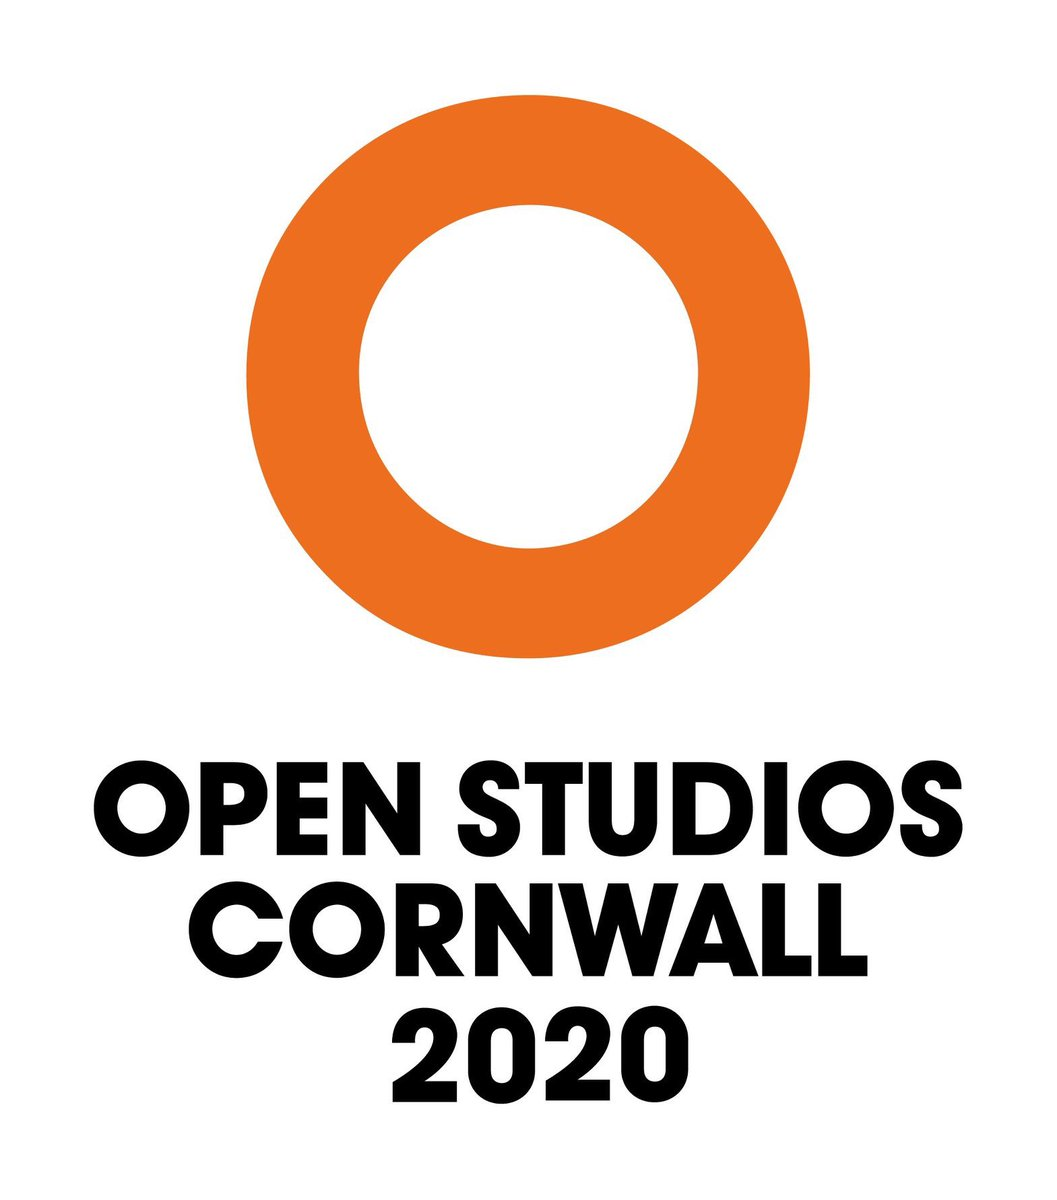 Getting excited about the Cornwall Open Studio event at our beautiful cottage by the sea in Bude.  29th Aug - 6th Sept open from 12 - 5pm  https://www.openstudioscornwall.co.uk/artist/bridget-winterbourne-2/…  #whatsonincornwall #budeandbeyond #visitbude #openstudioscornwall #artgallery #artexhibitions pic.twitter.com/HGYEZAN9Um